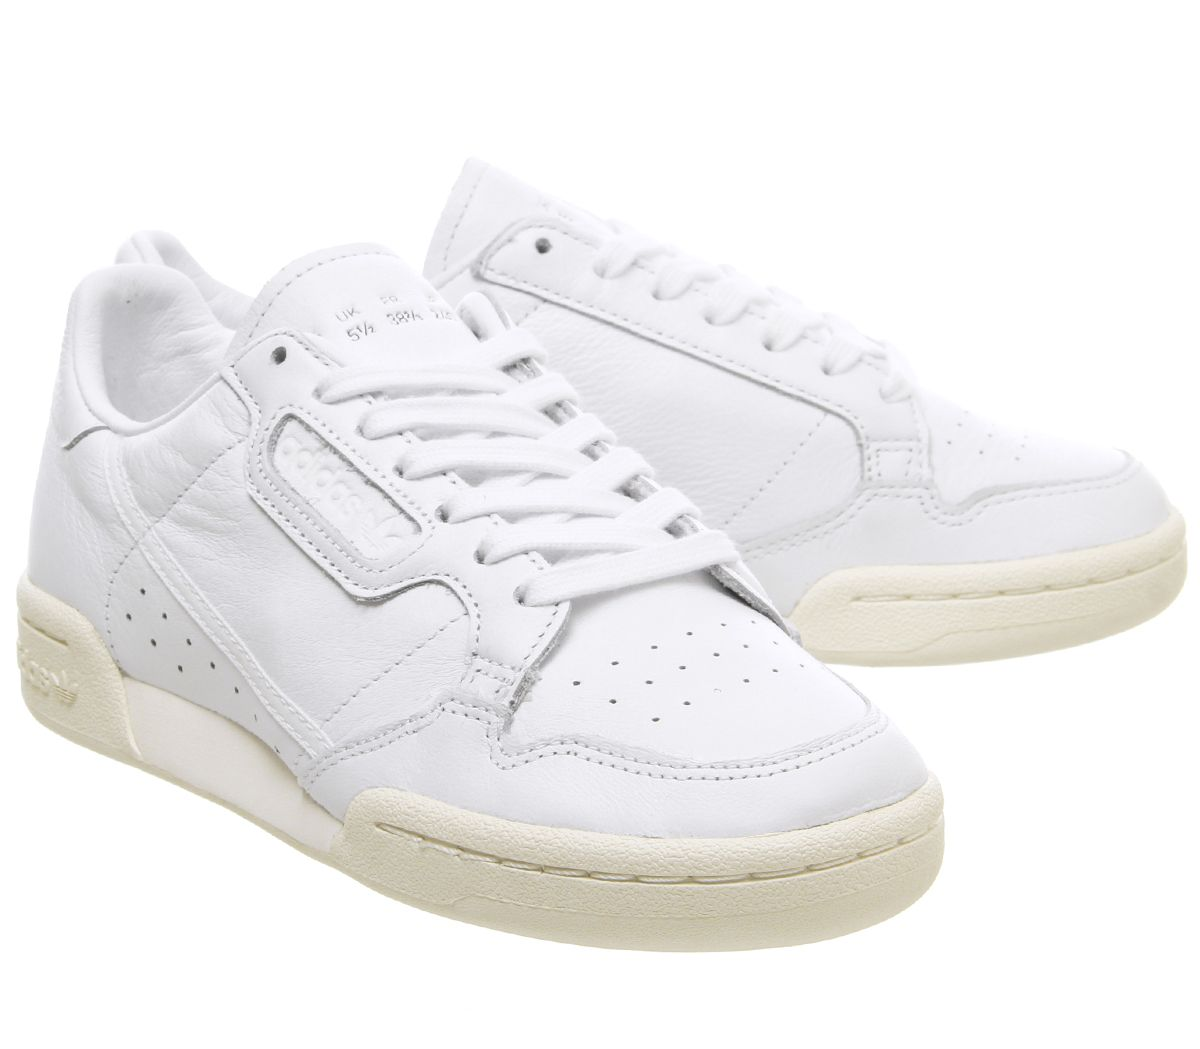 Details zu Adidas Continental 80S Trainers White Off White Trainers Shoes